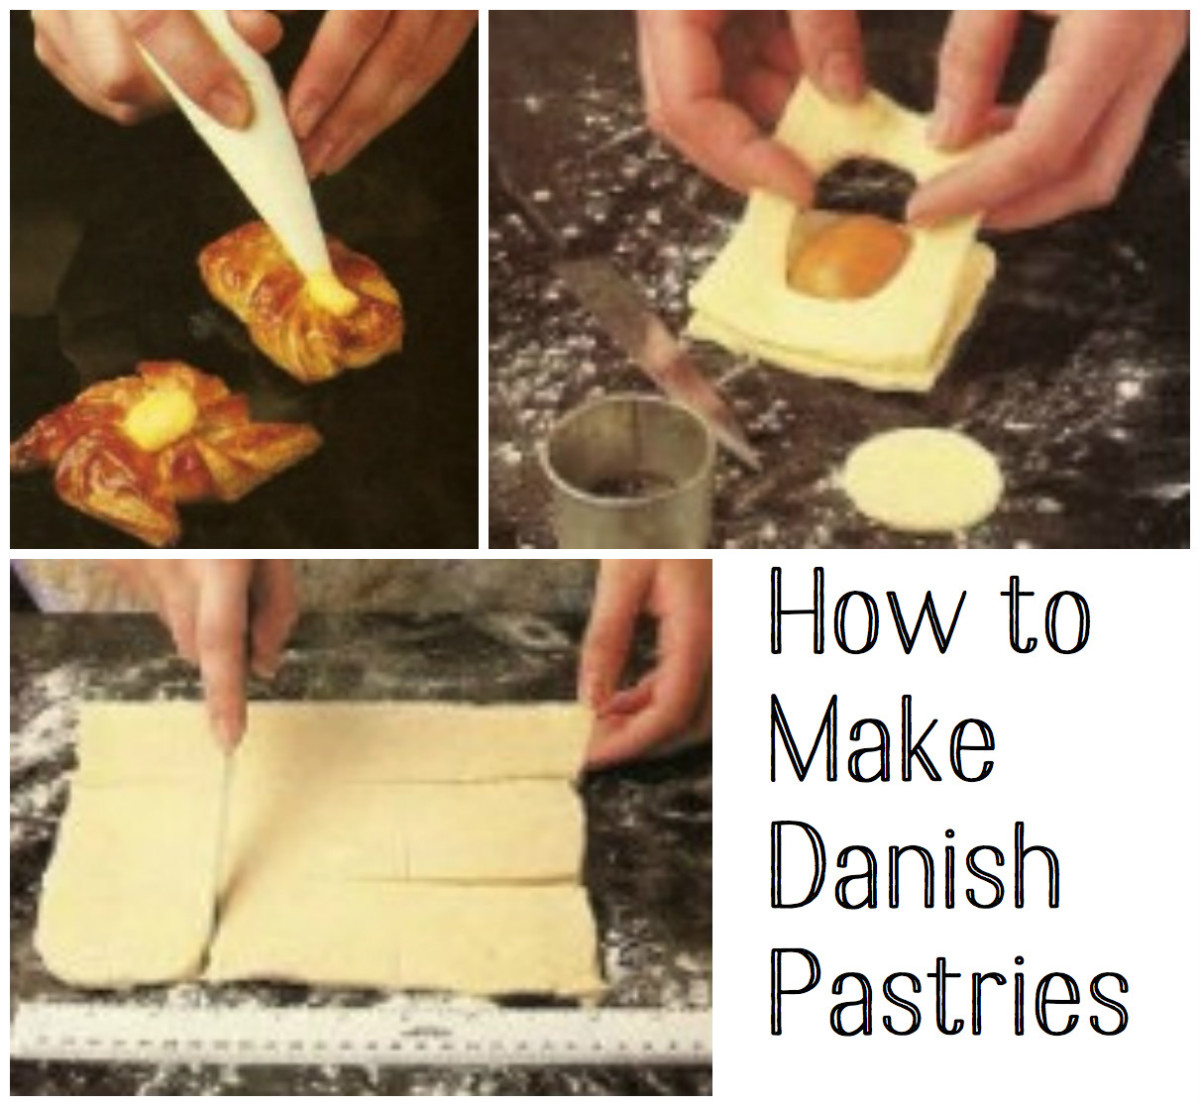 How to Make Danish Pastries: Step-by-Step With Pictures